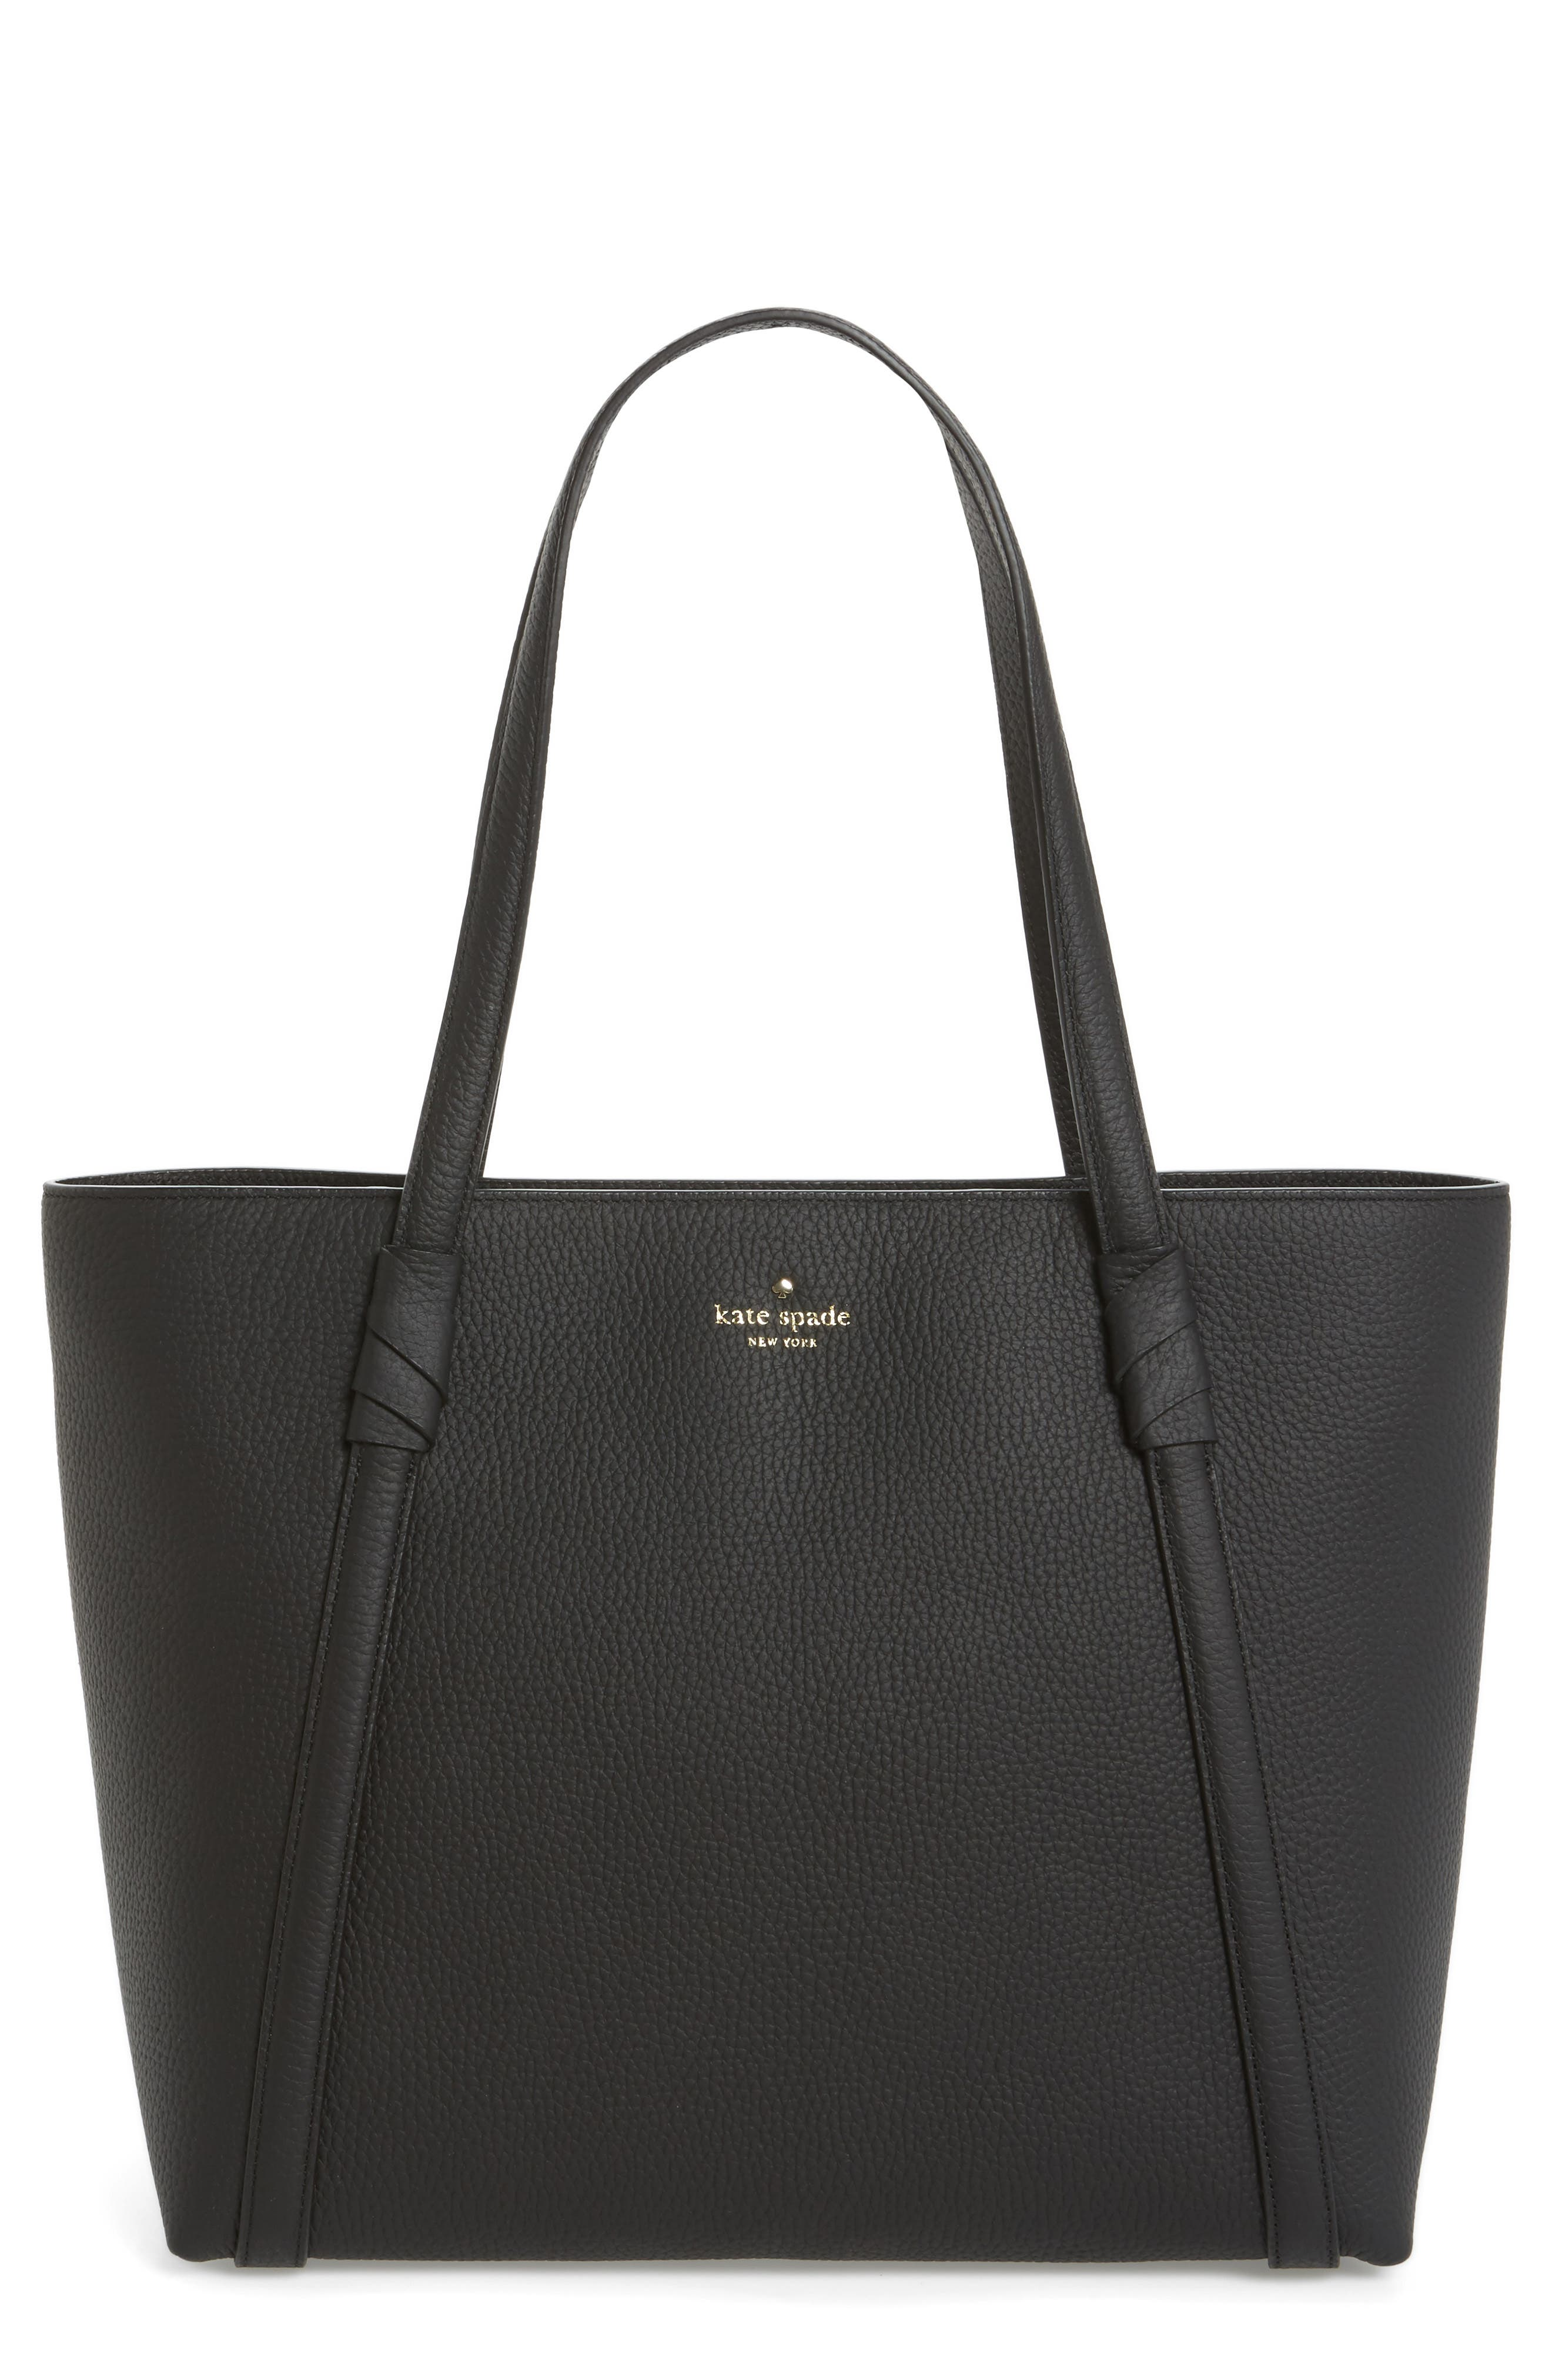 daniels drive - cherie leather tote,                             Main thumbnail 1, color,                             Black